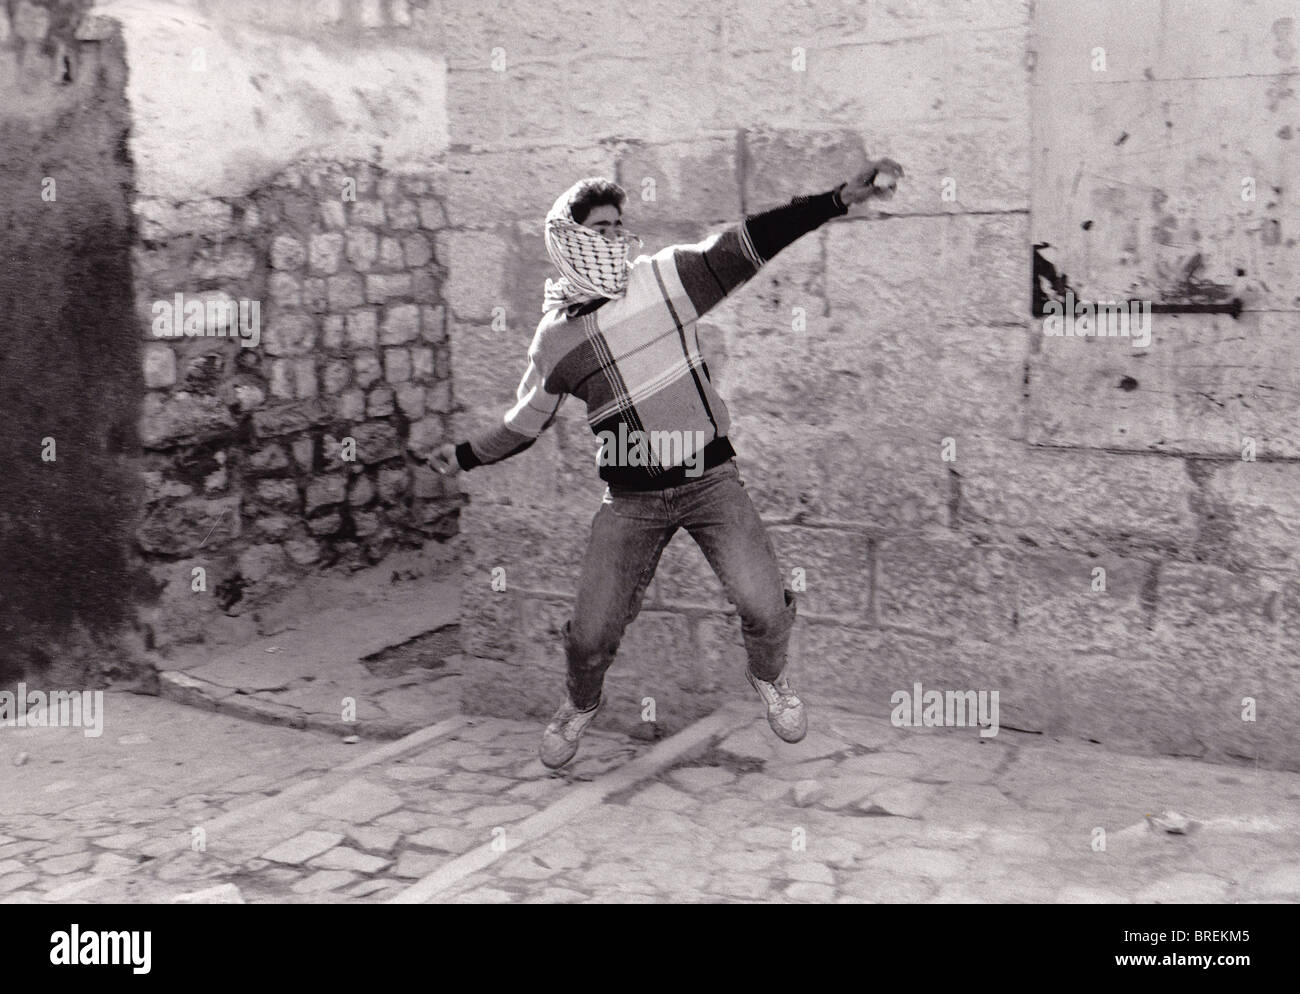 PALESTINE PALESTINIAN YOUTH THROWING STONES AT ISRAELI SOLDIERS DURING INTIFADA - Stock Image